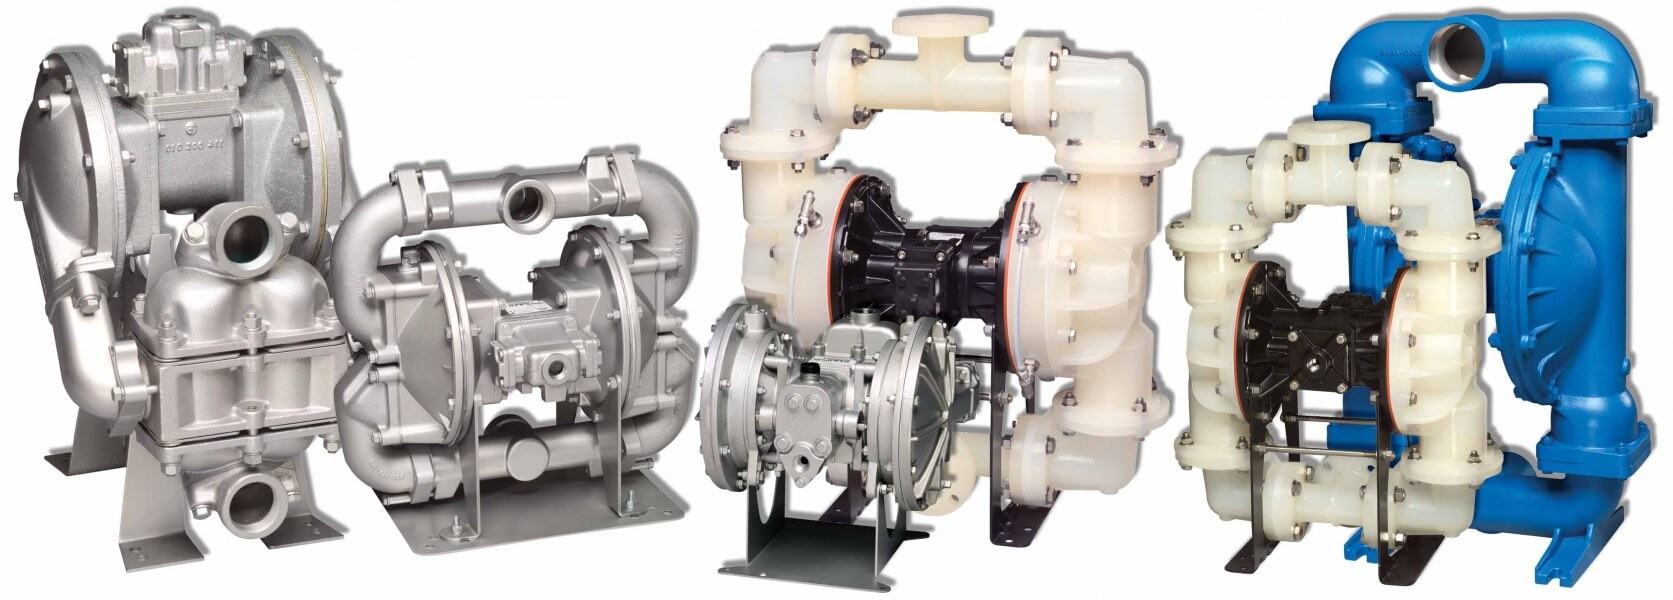 Sandpiper warren rupp repair services phoenix pumps inc offers complete repair services and replacement parts for warren rupp sandpiper air operated double diaphragm pumps ccuart Choice Image